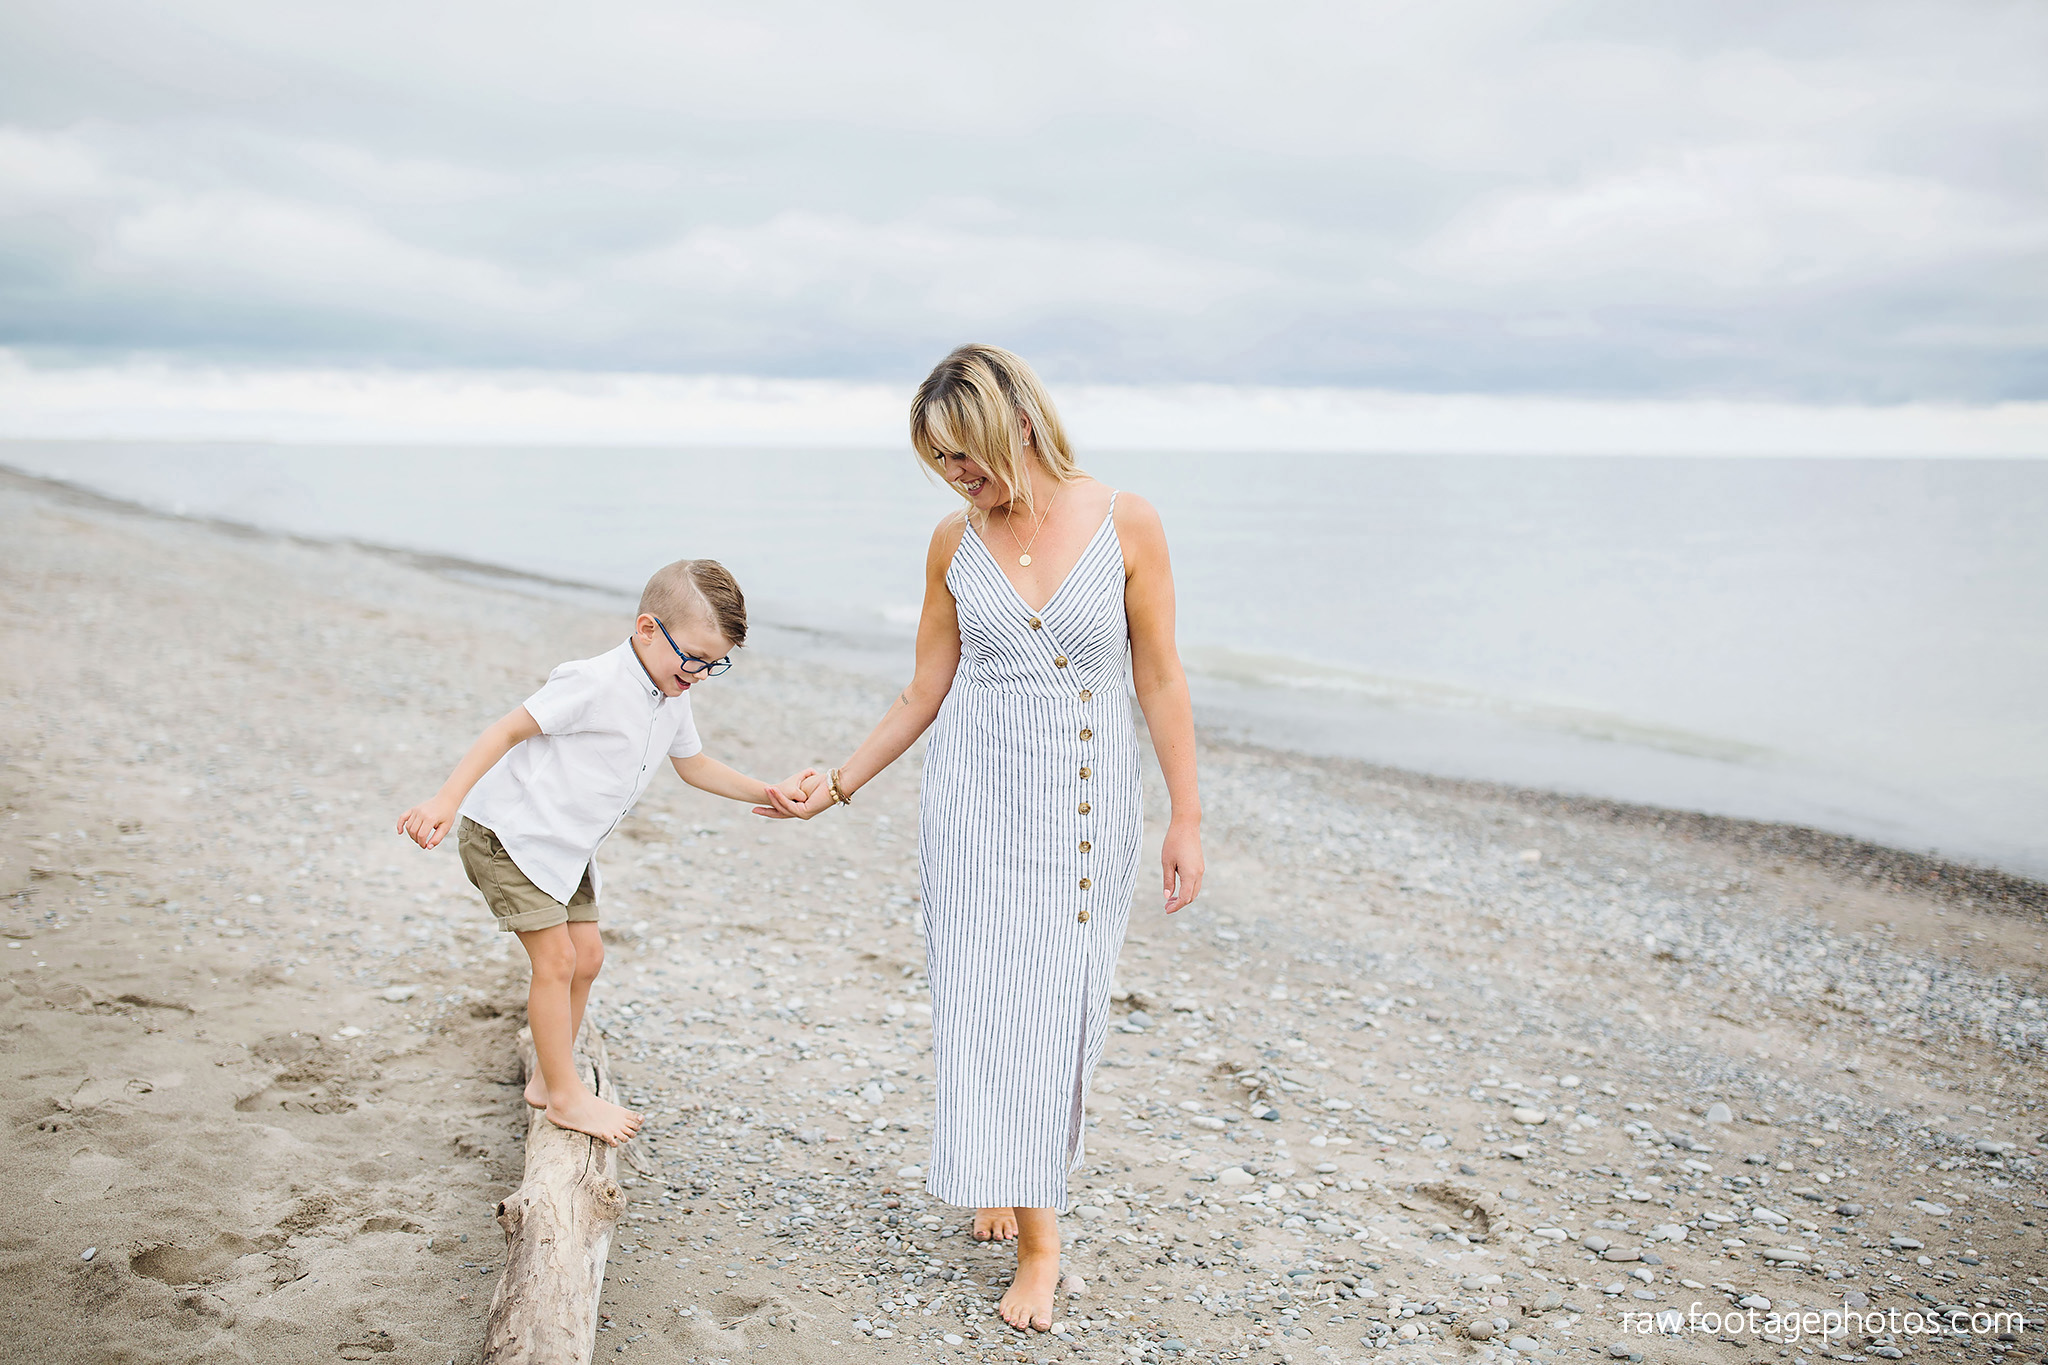 london_ontario_family_photographer-beach_minis-port_stanley_beach-raw_footage_photography063.jpg